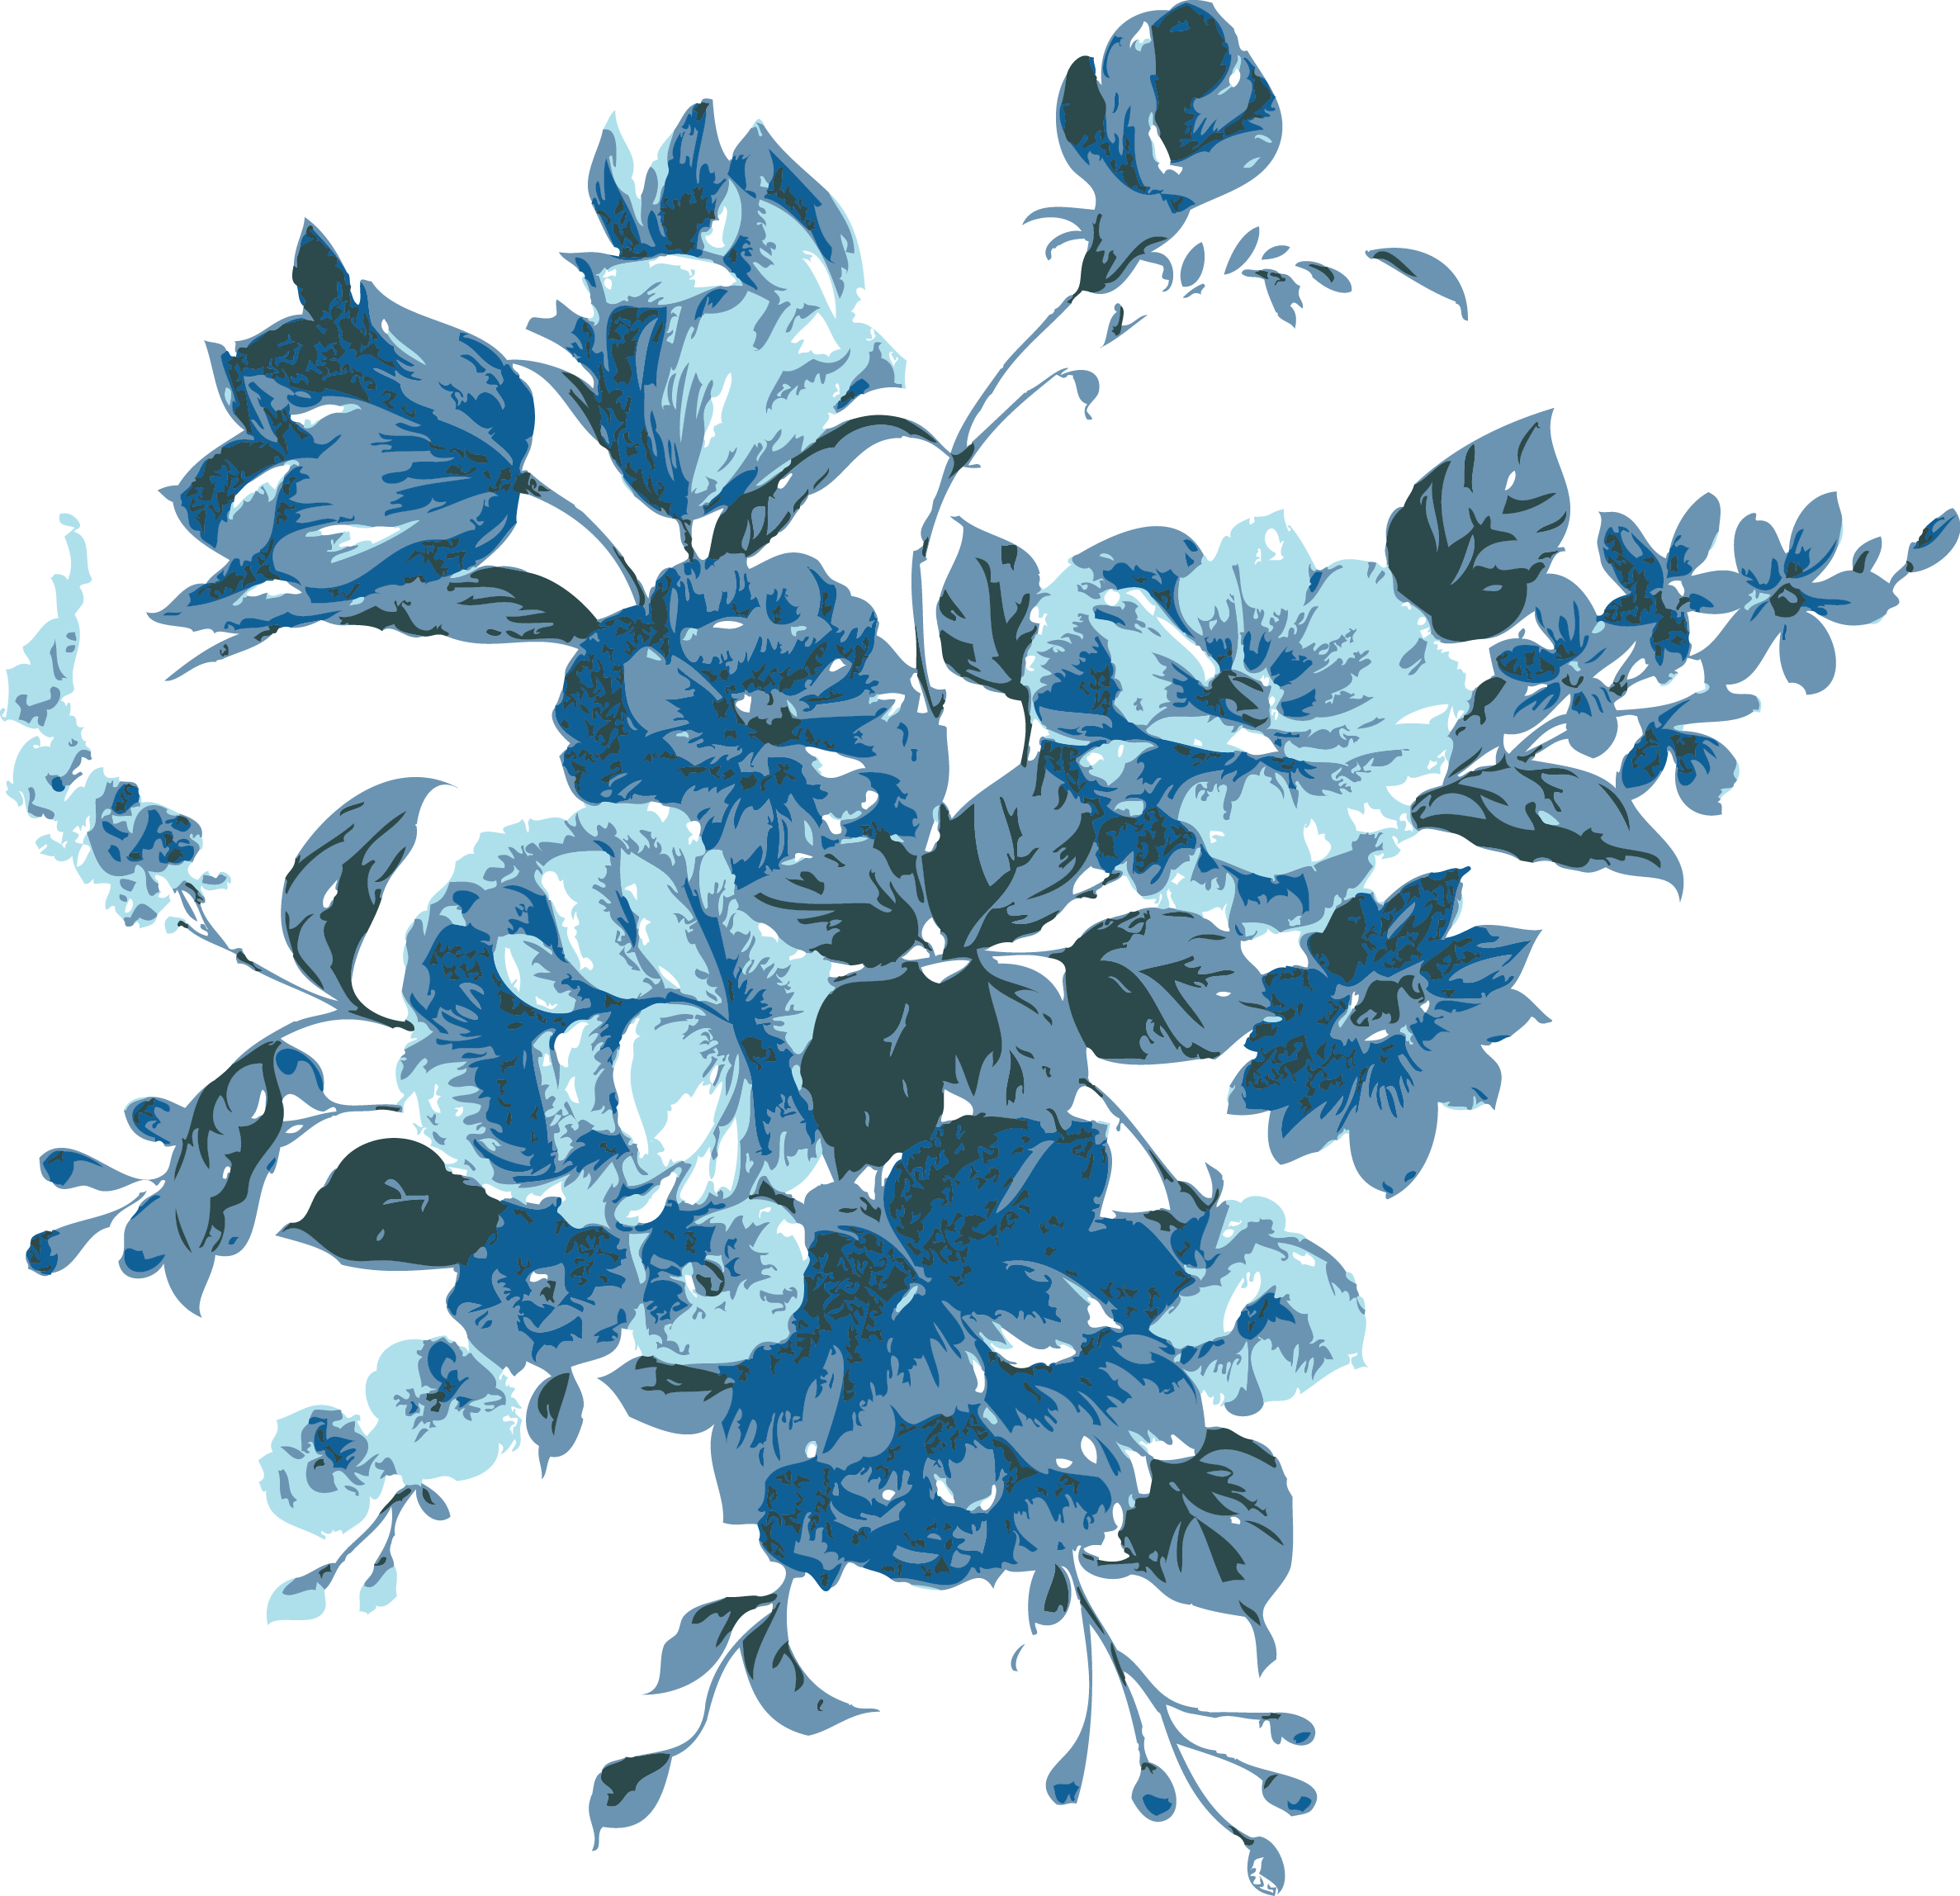 Blue Flowers Blue Flower Painting Blue Flowers Background Blue Flower Png